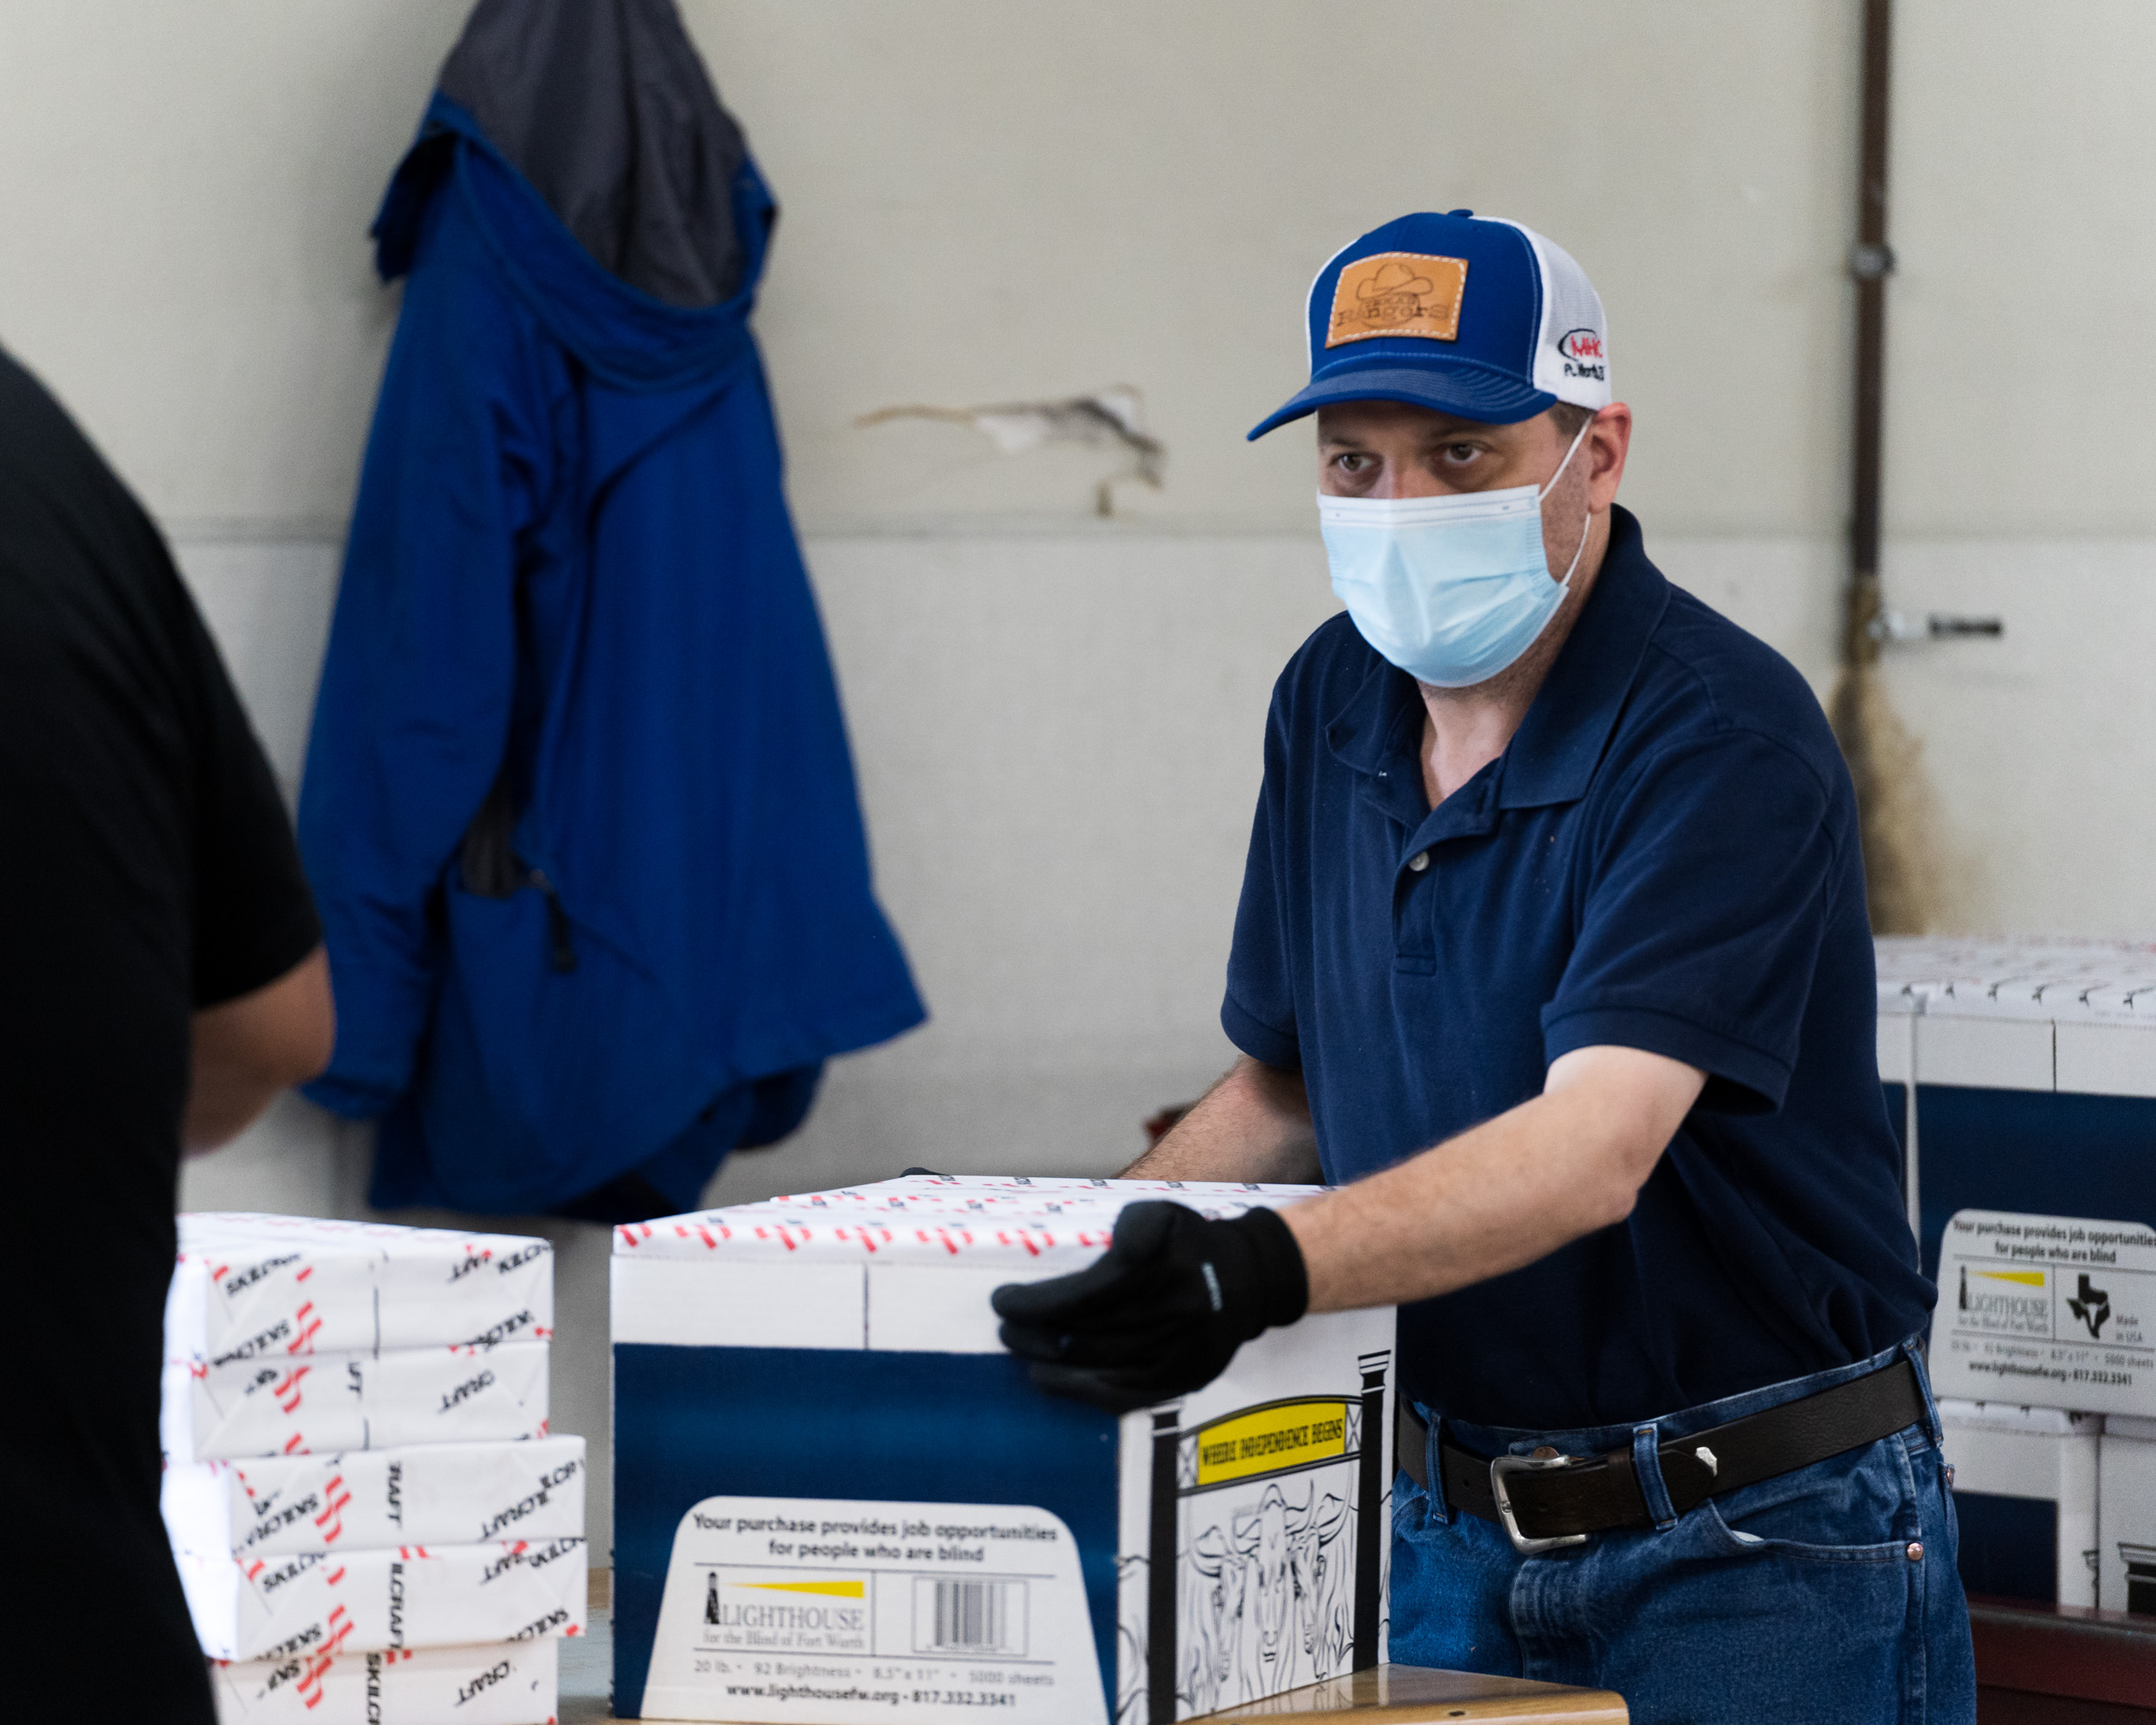 A man with a mask and hat on moves boxes filled with paper